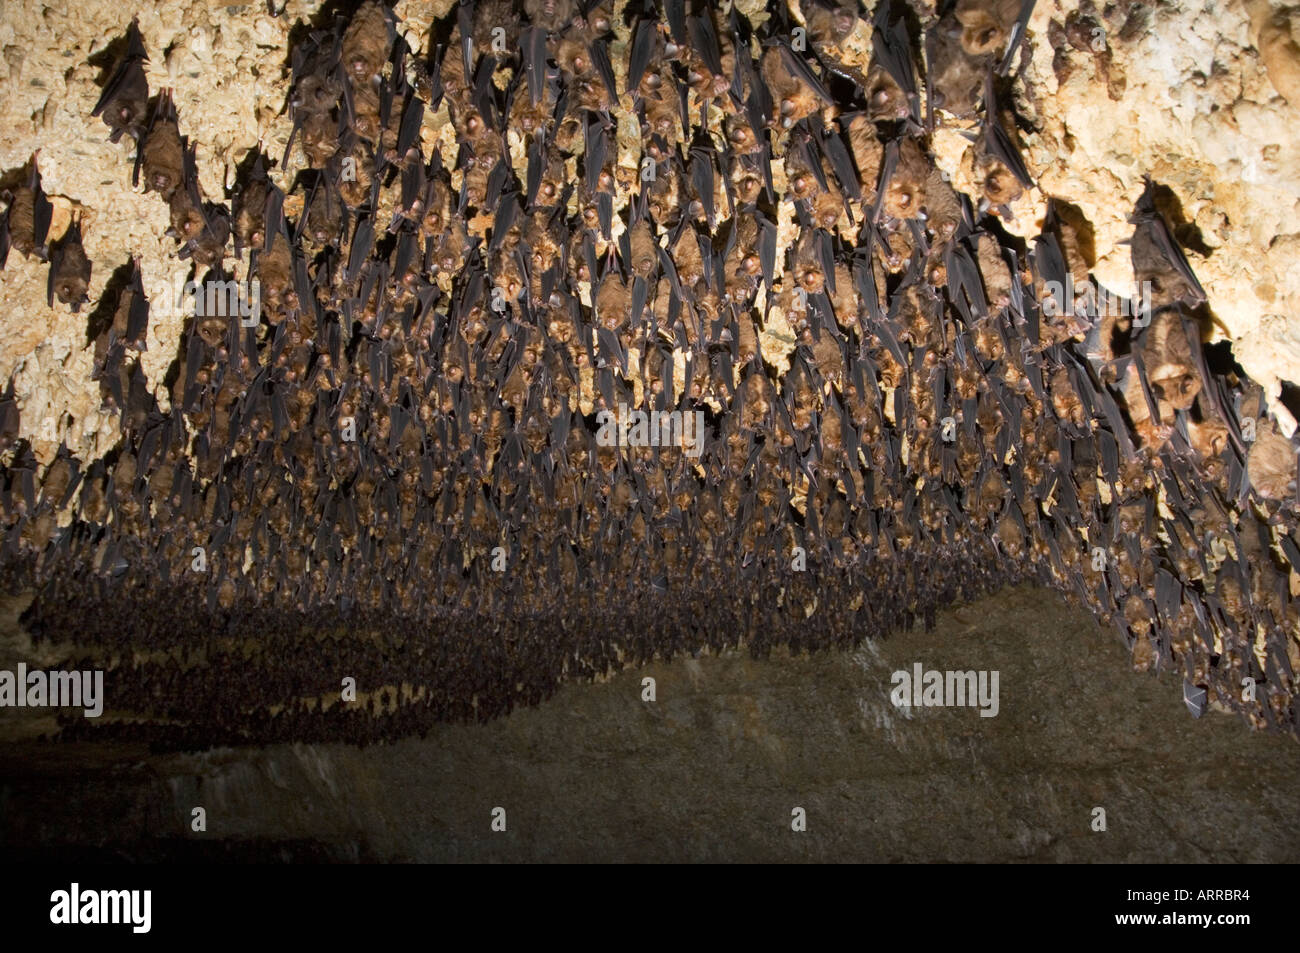 Great Colony Wild Bats In The Bat Cave Chamera Gupha Nepal